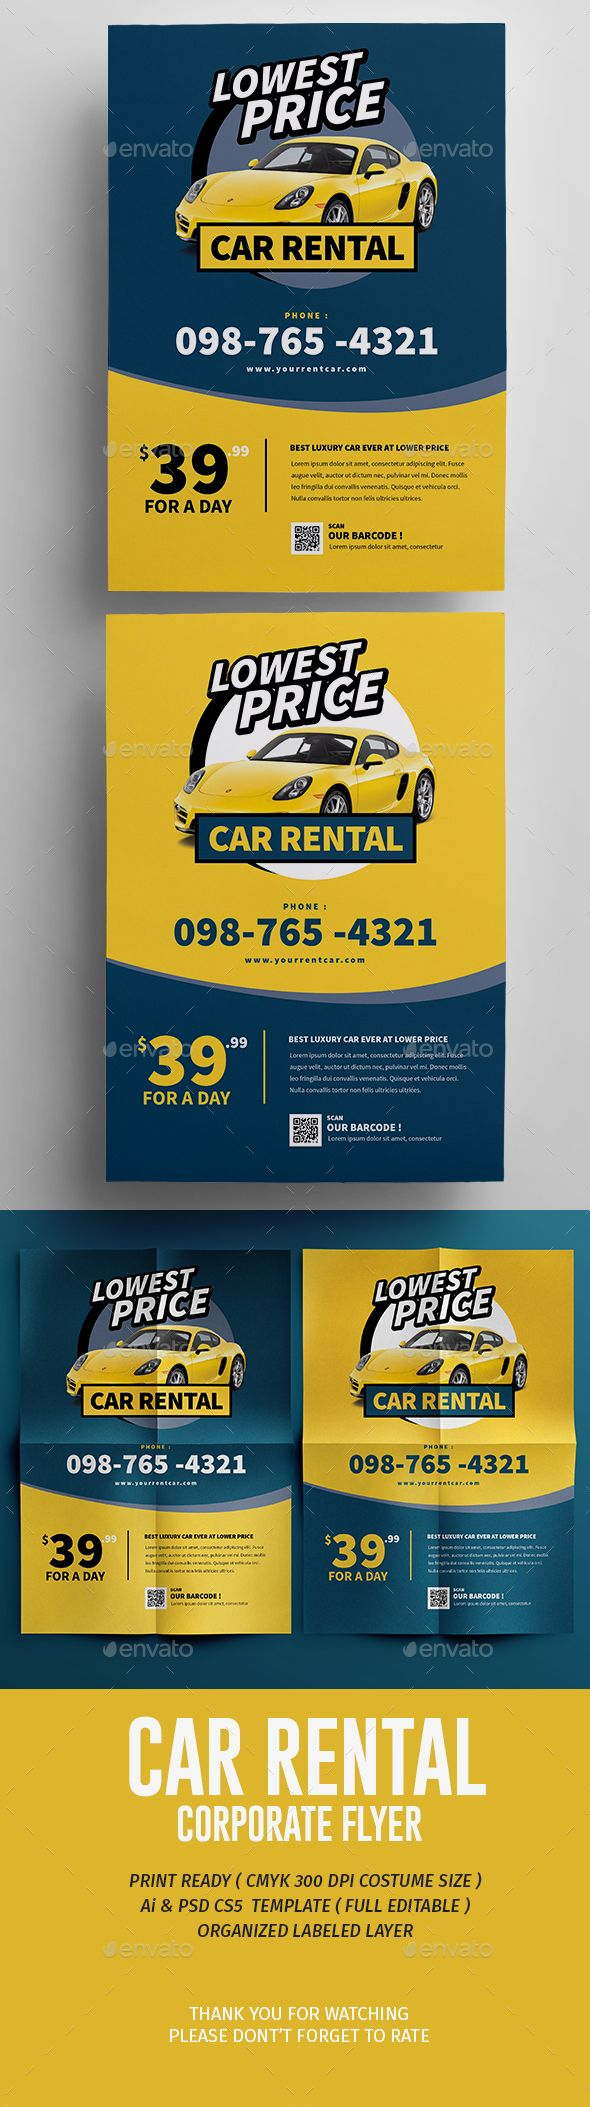 Car rental flyer corporate flyers download here https graphicriver